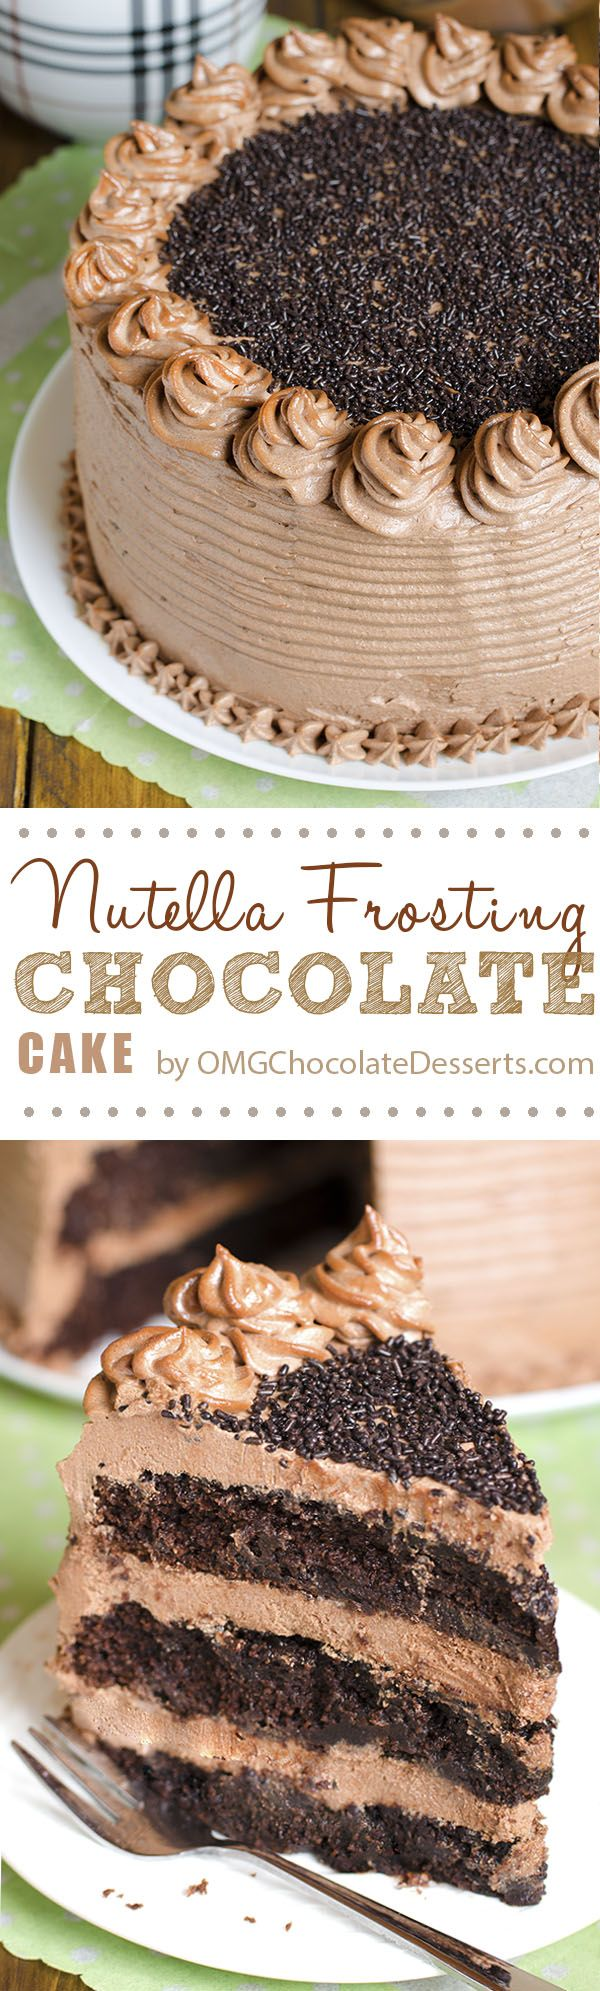 Quick Nutella Icing Recipe Best 20 Nutella Icing Ideas On Pinterest Nutella Cream Cheese